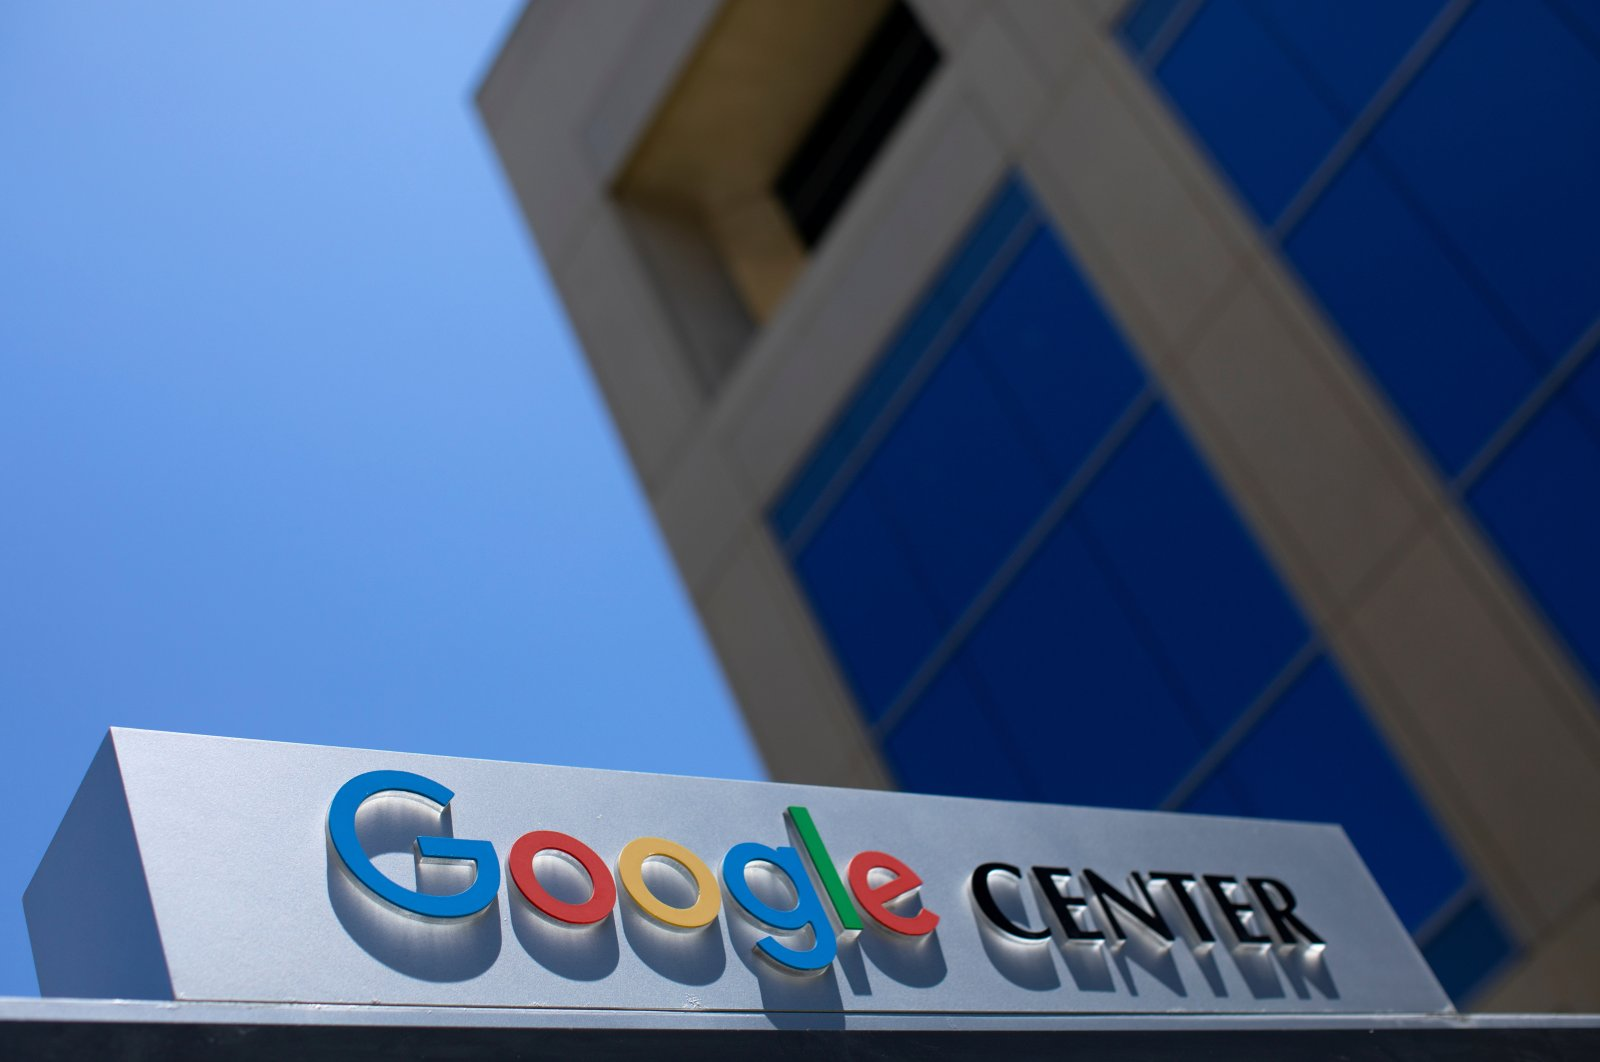 After the company announced it would extend its COVID-19 work-from-home order until summer 2021, a  Google sign is shown at one of the company's office complexes in Irvine, California, U.S., July 27, 2020. (Reuters Photo)